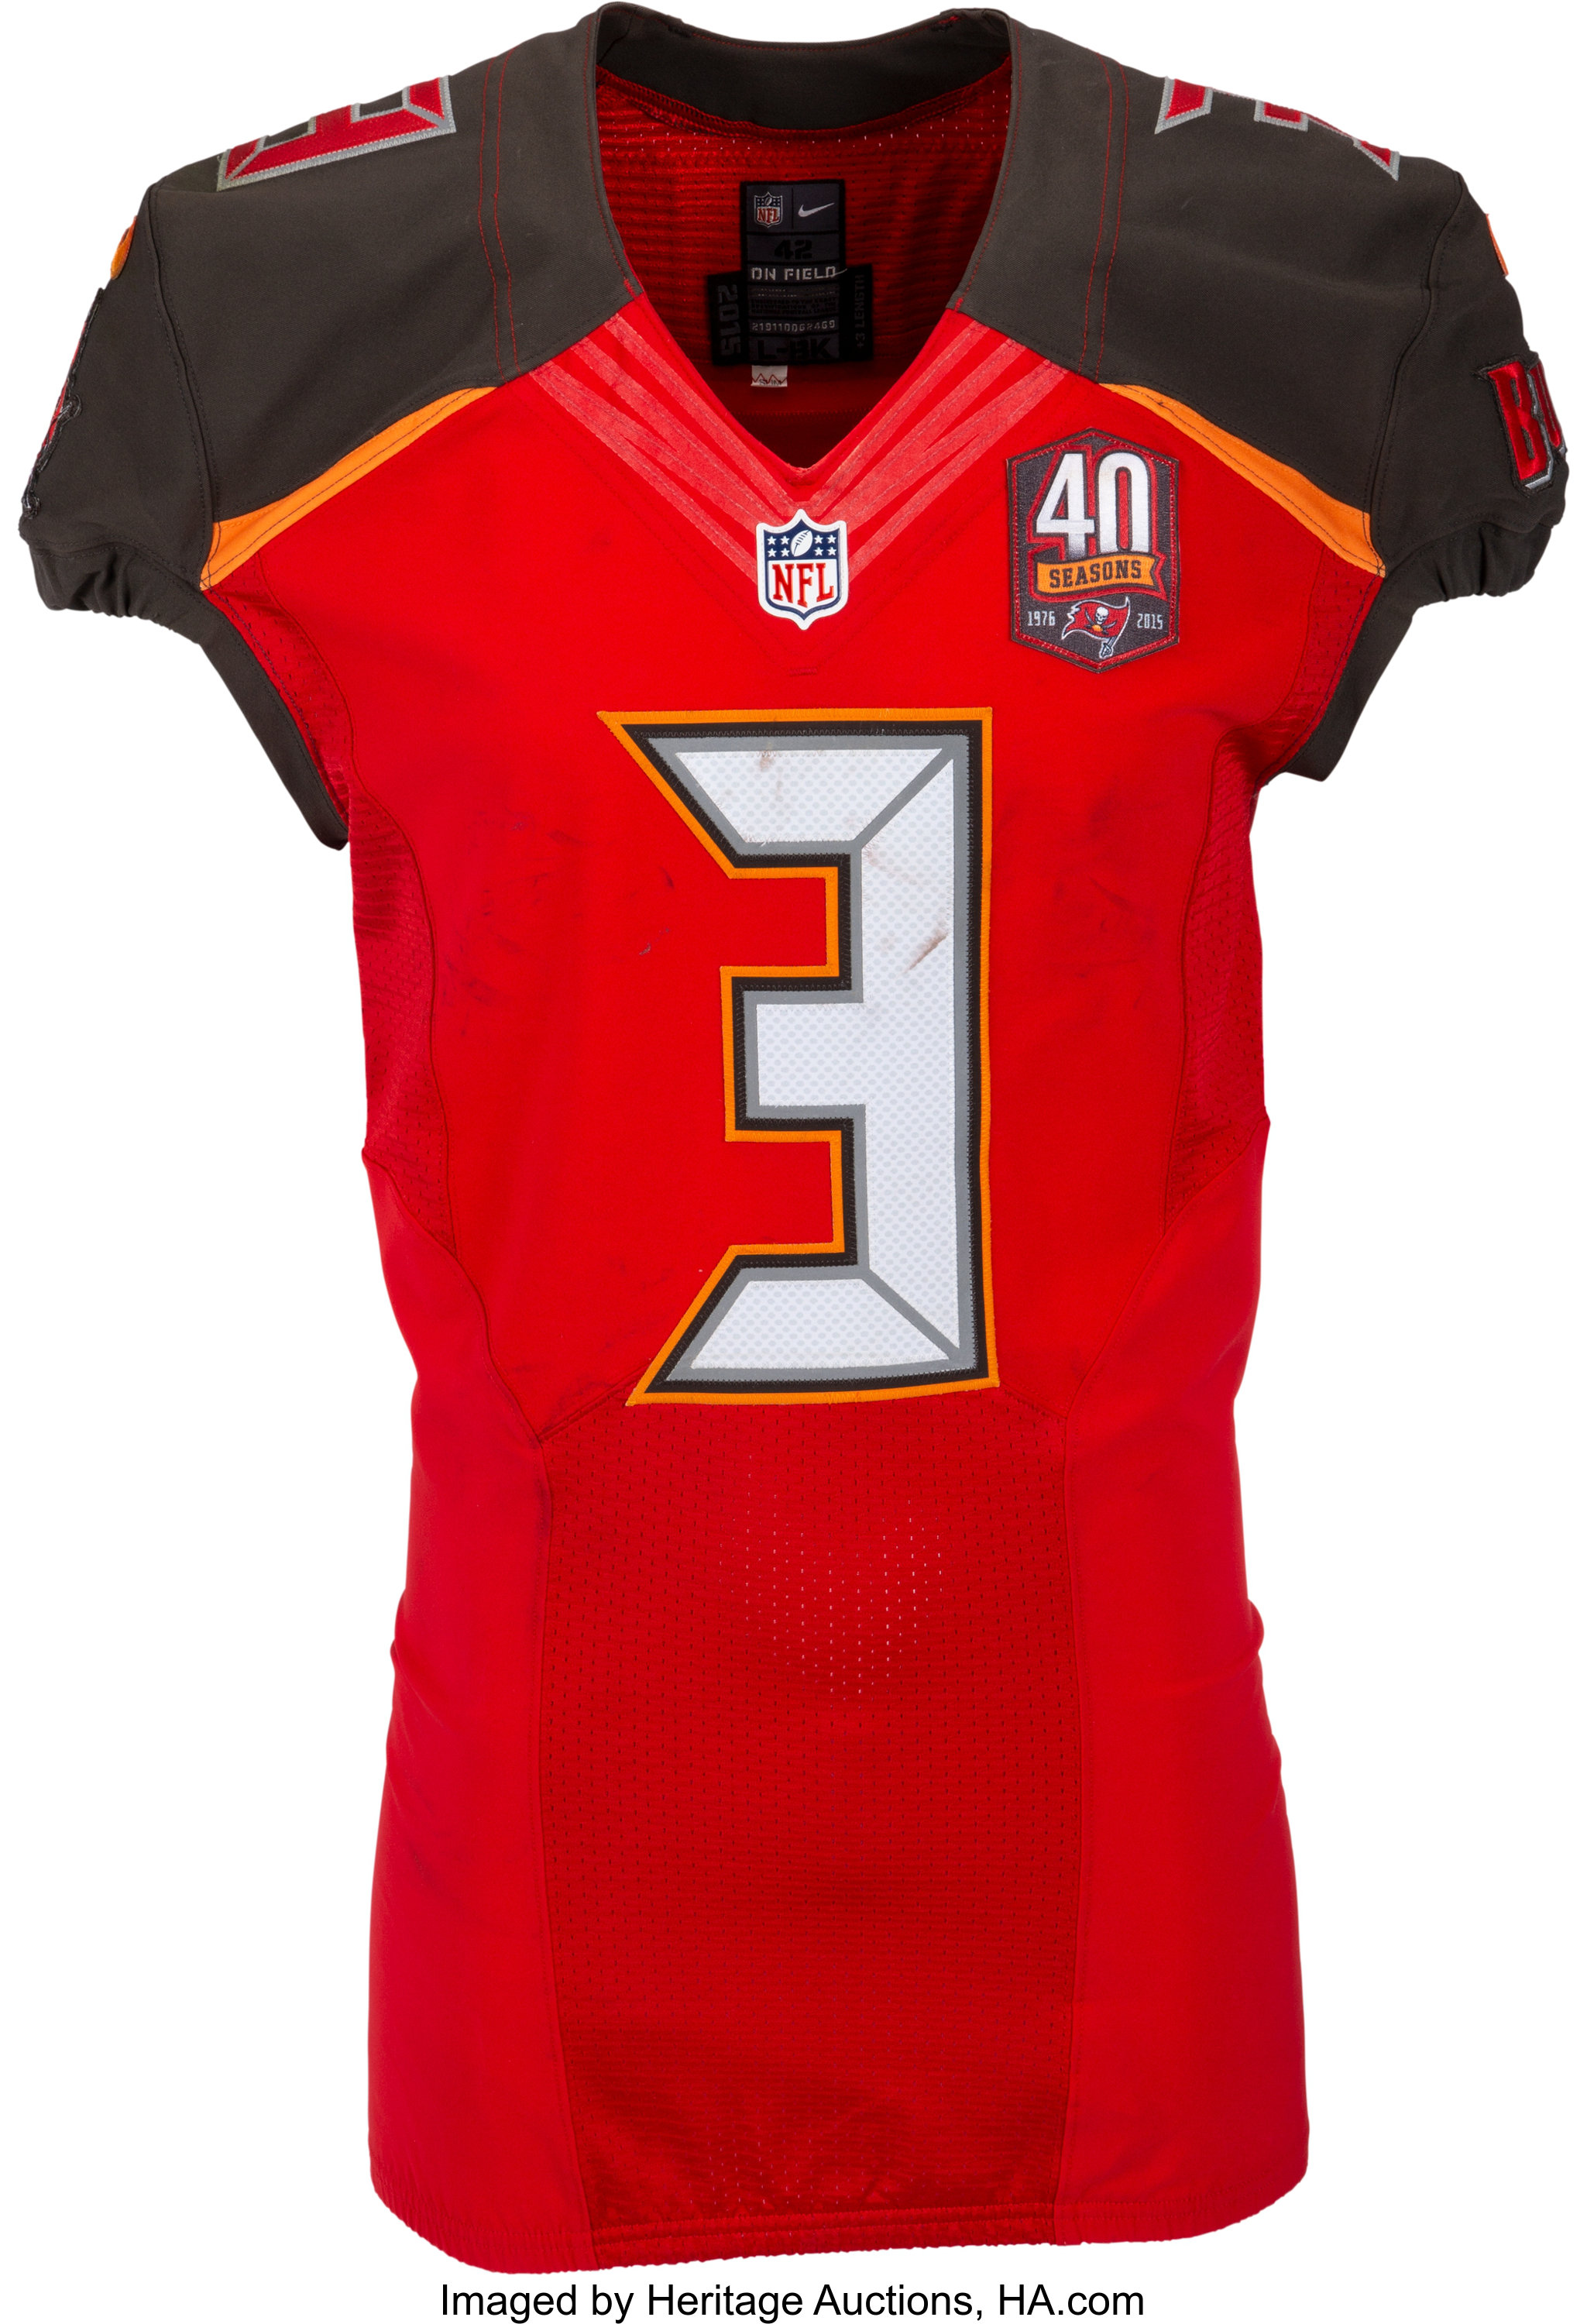 2015 jameis winston game worn tampa bay buccaneers rookie jersey lot 57715 heritage auctions https sports ha com itm football collectibles uniforms 2015 jameis winston game worn tampa bay buccaneers rookie jersey photomatched to 12 6 vs falcons a 50013 57715 s